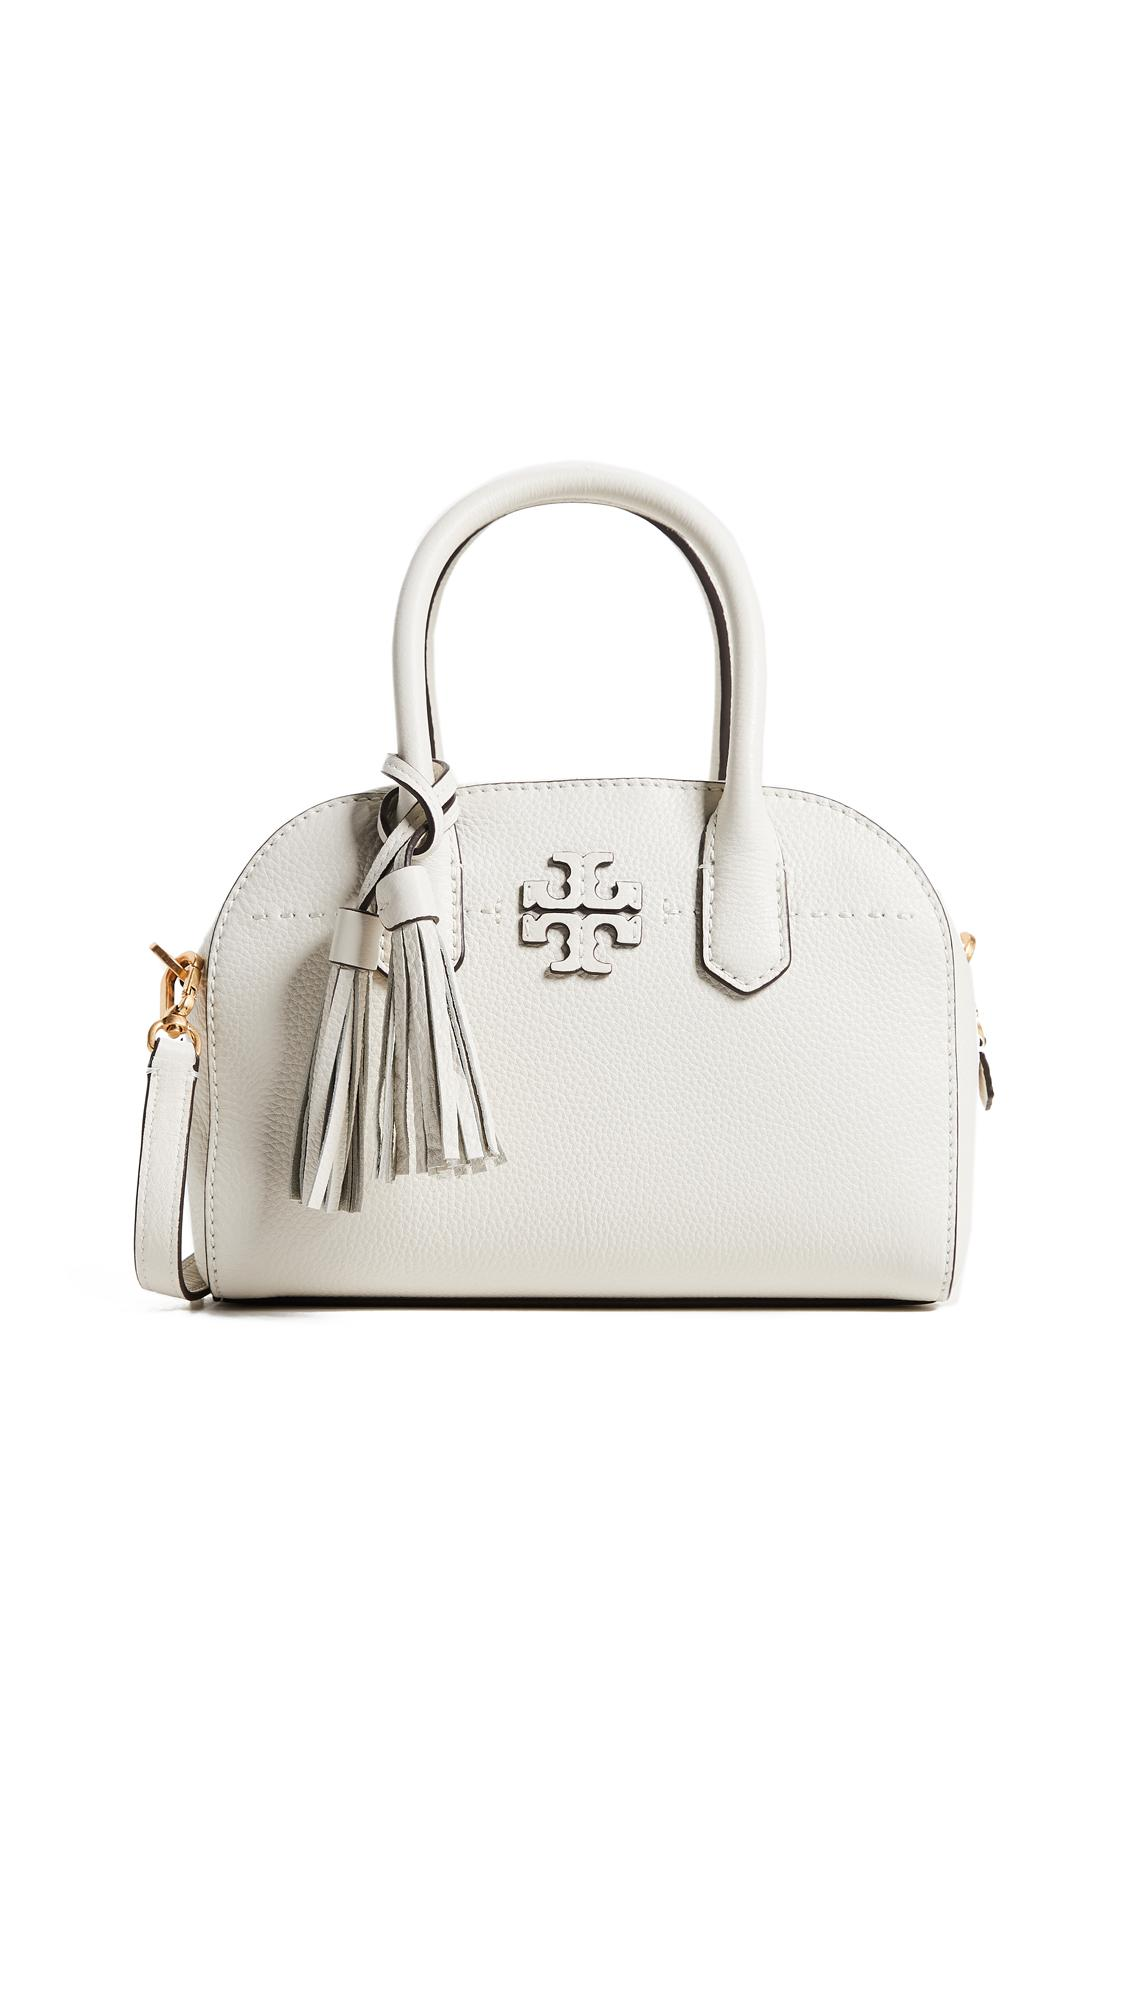 Tory Burch Mcgraw Small Satchel In New Ivory